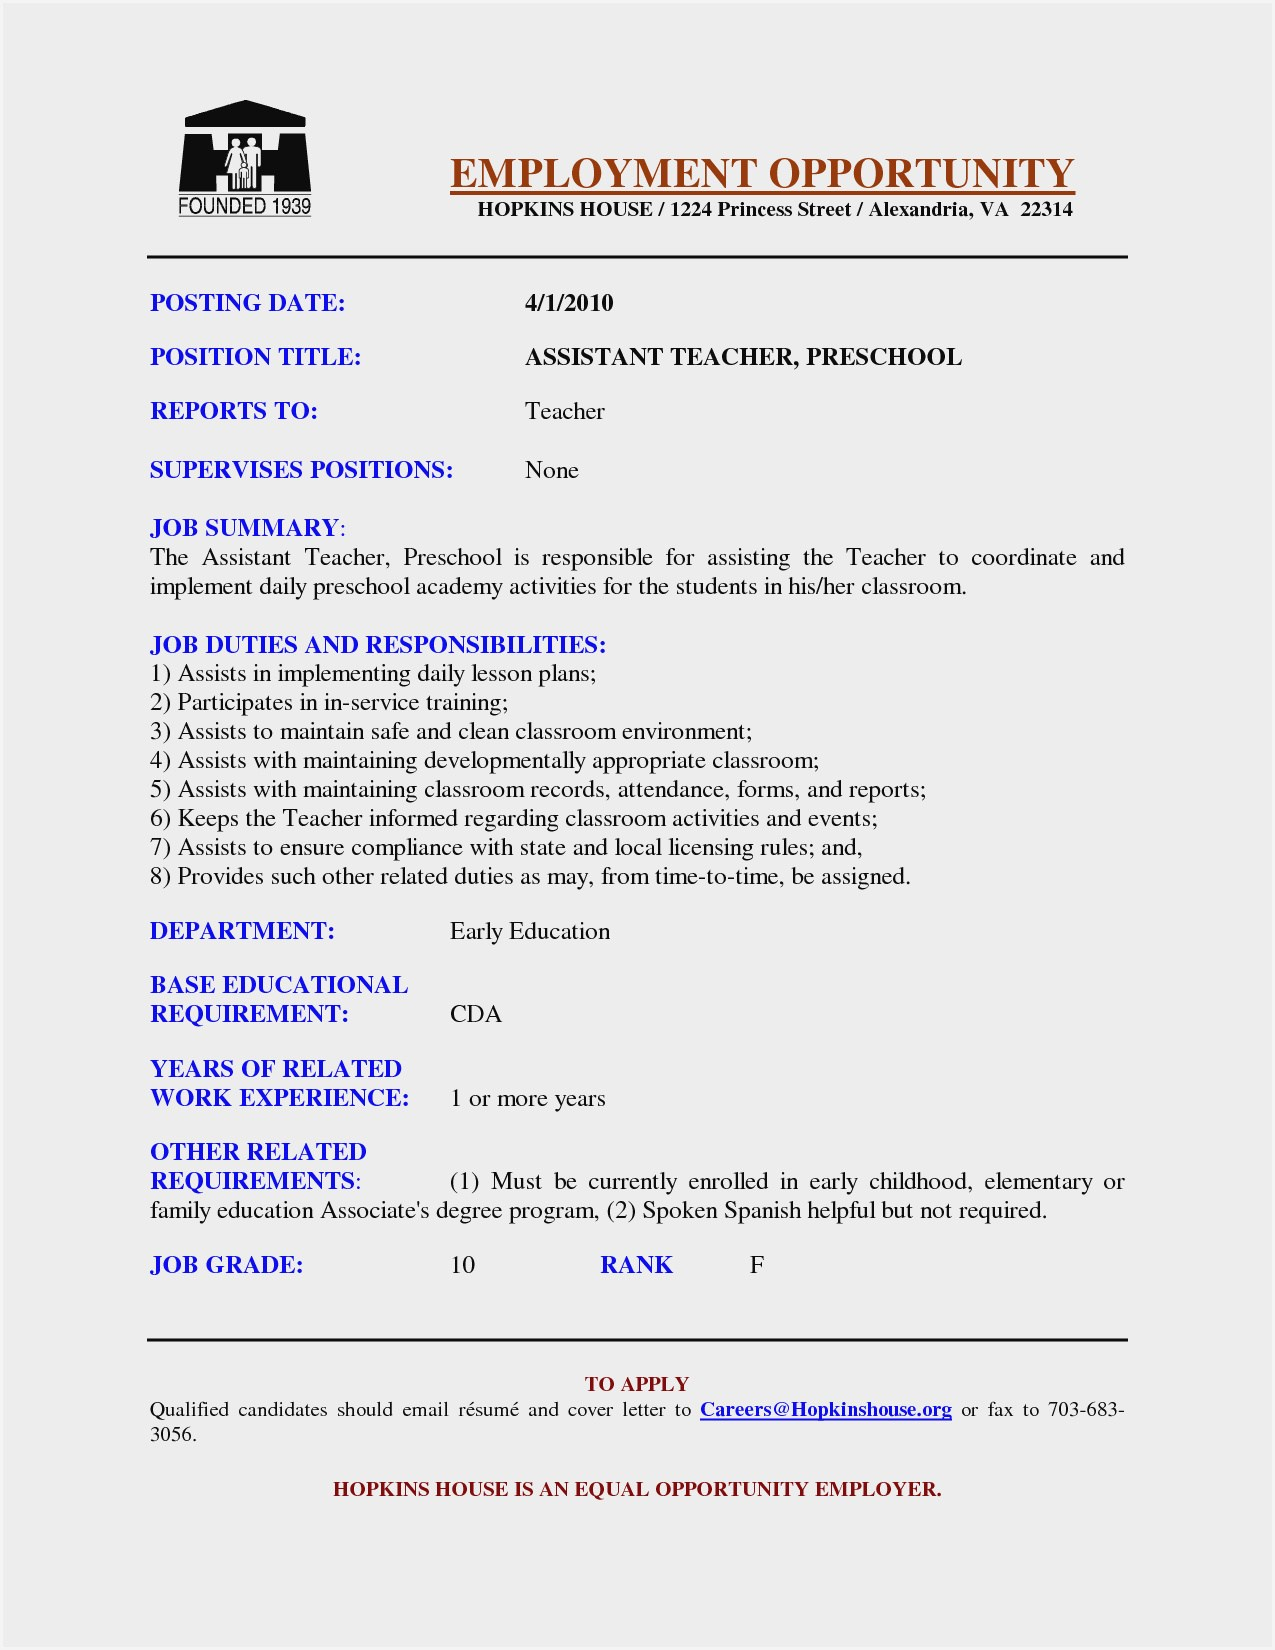 resume template for teachers aide sample teaching cna examples with experience rover Resume Teaching Resume Victoria